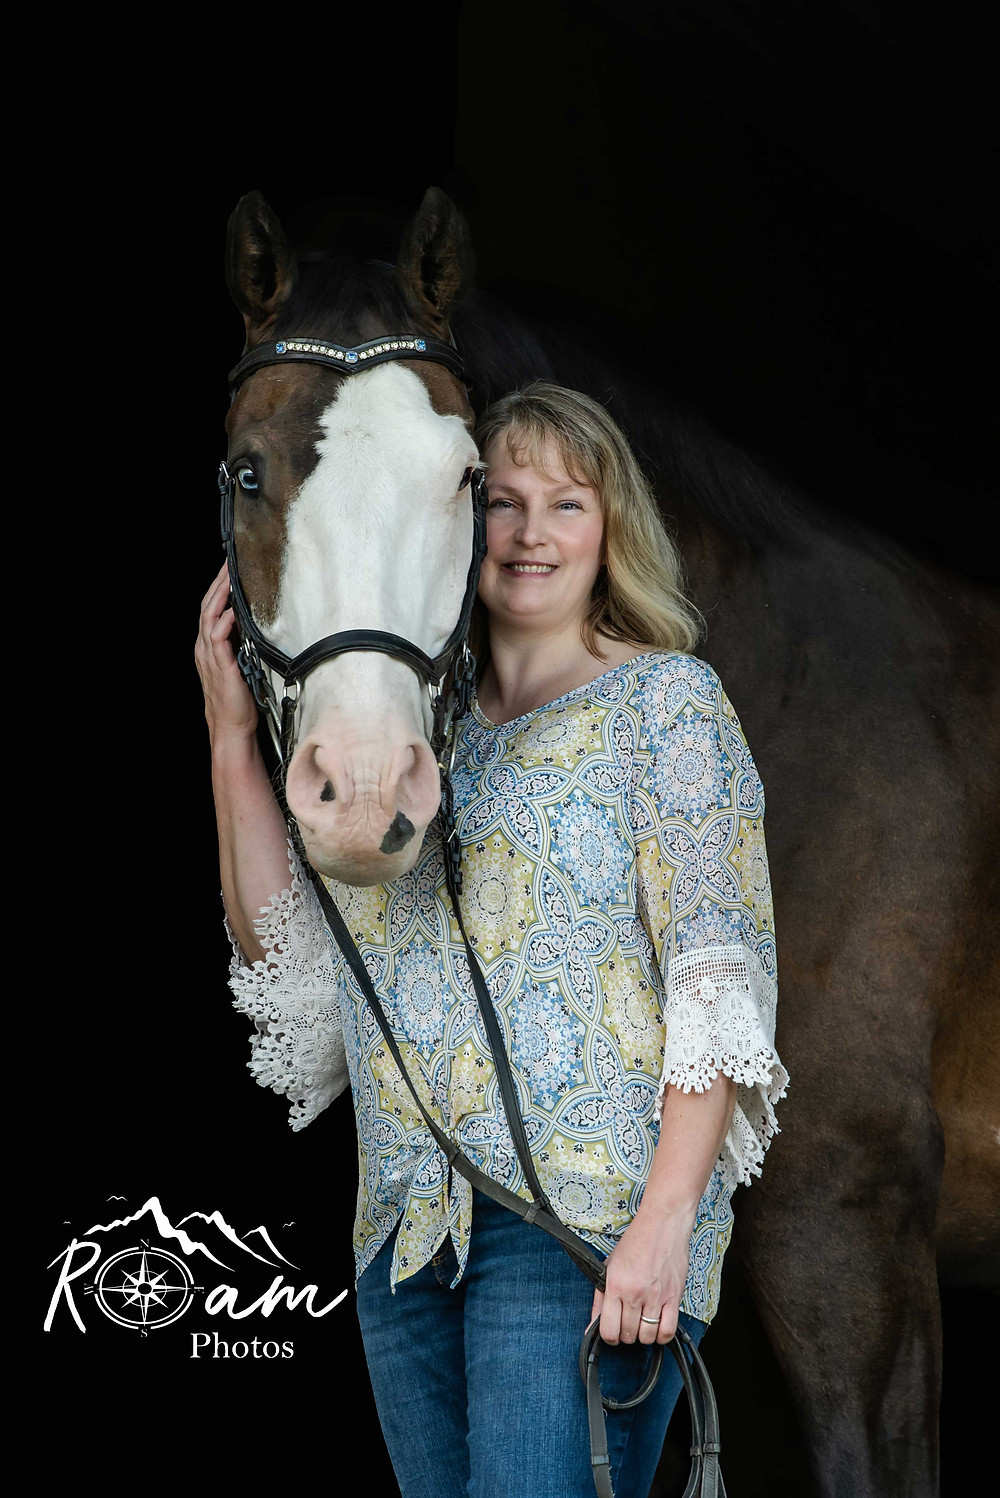 Pretty lady with her horse